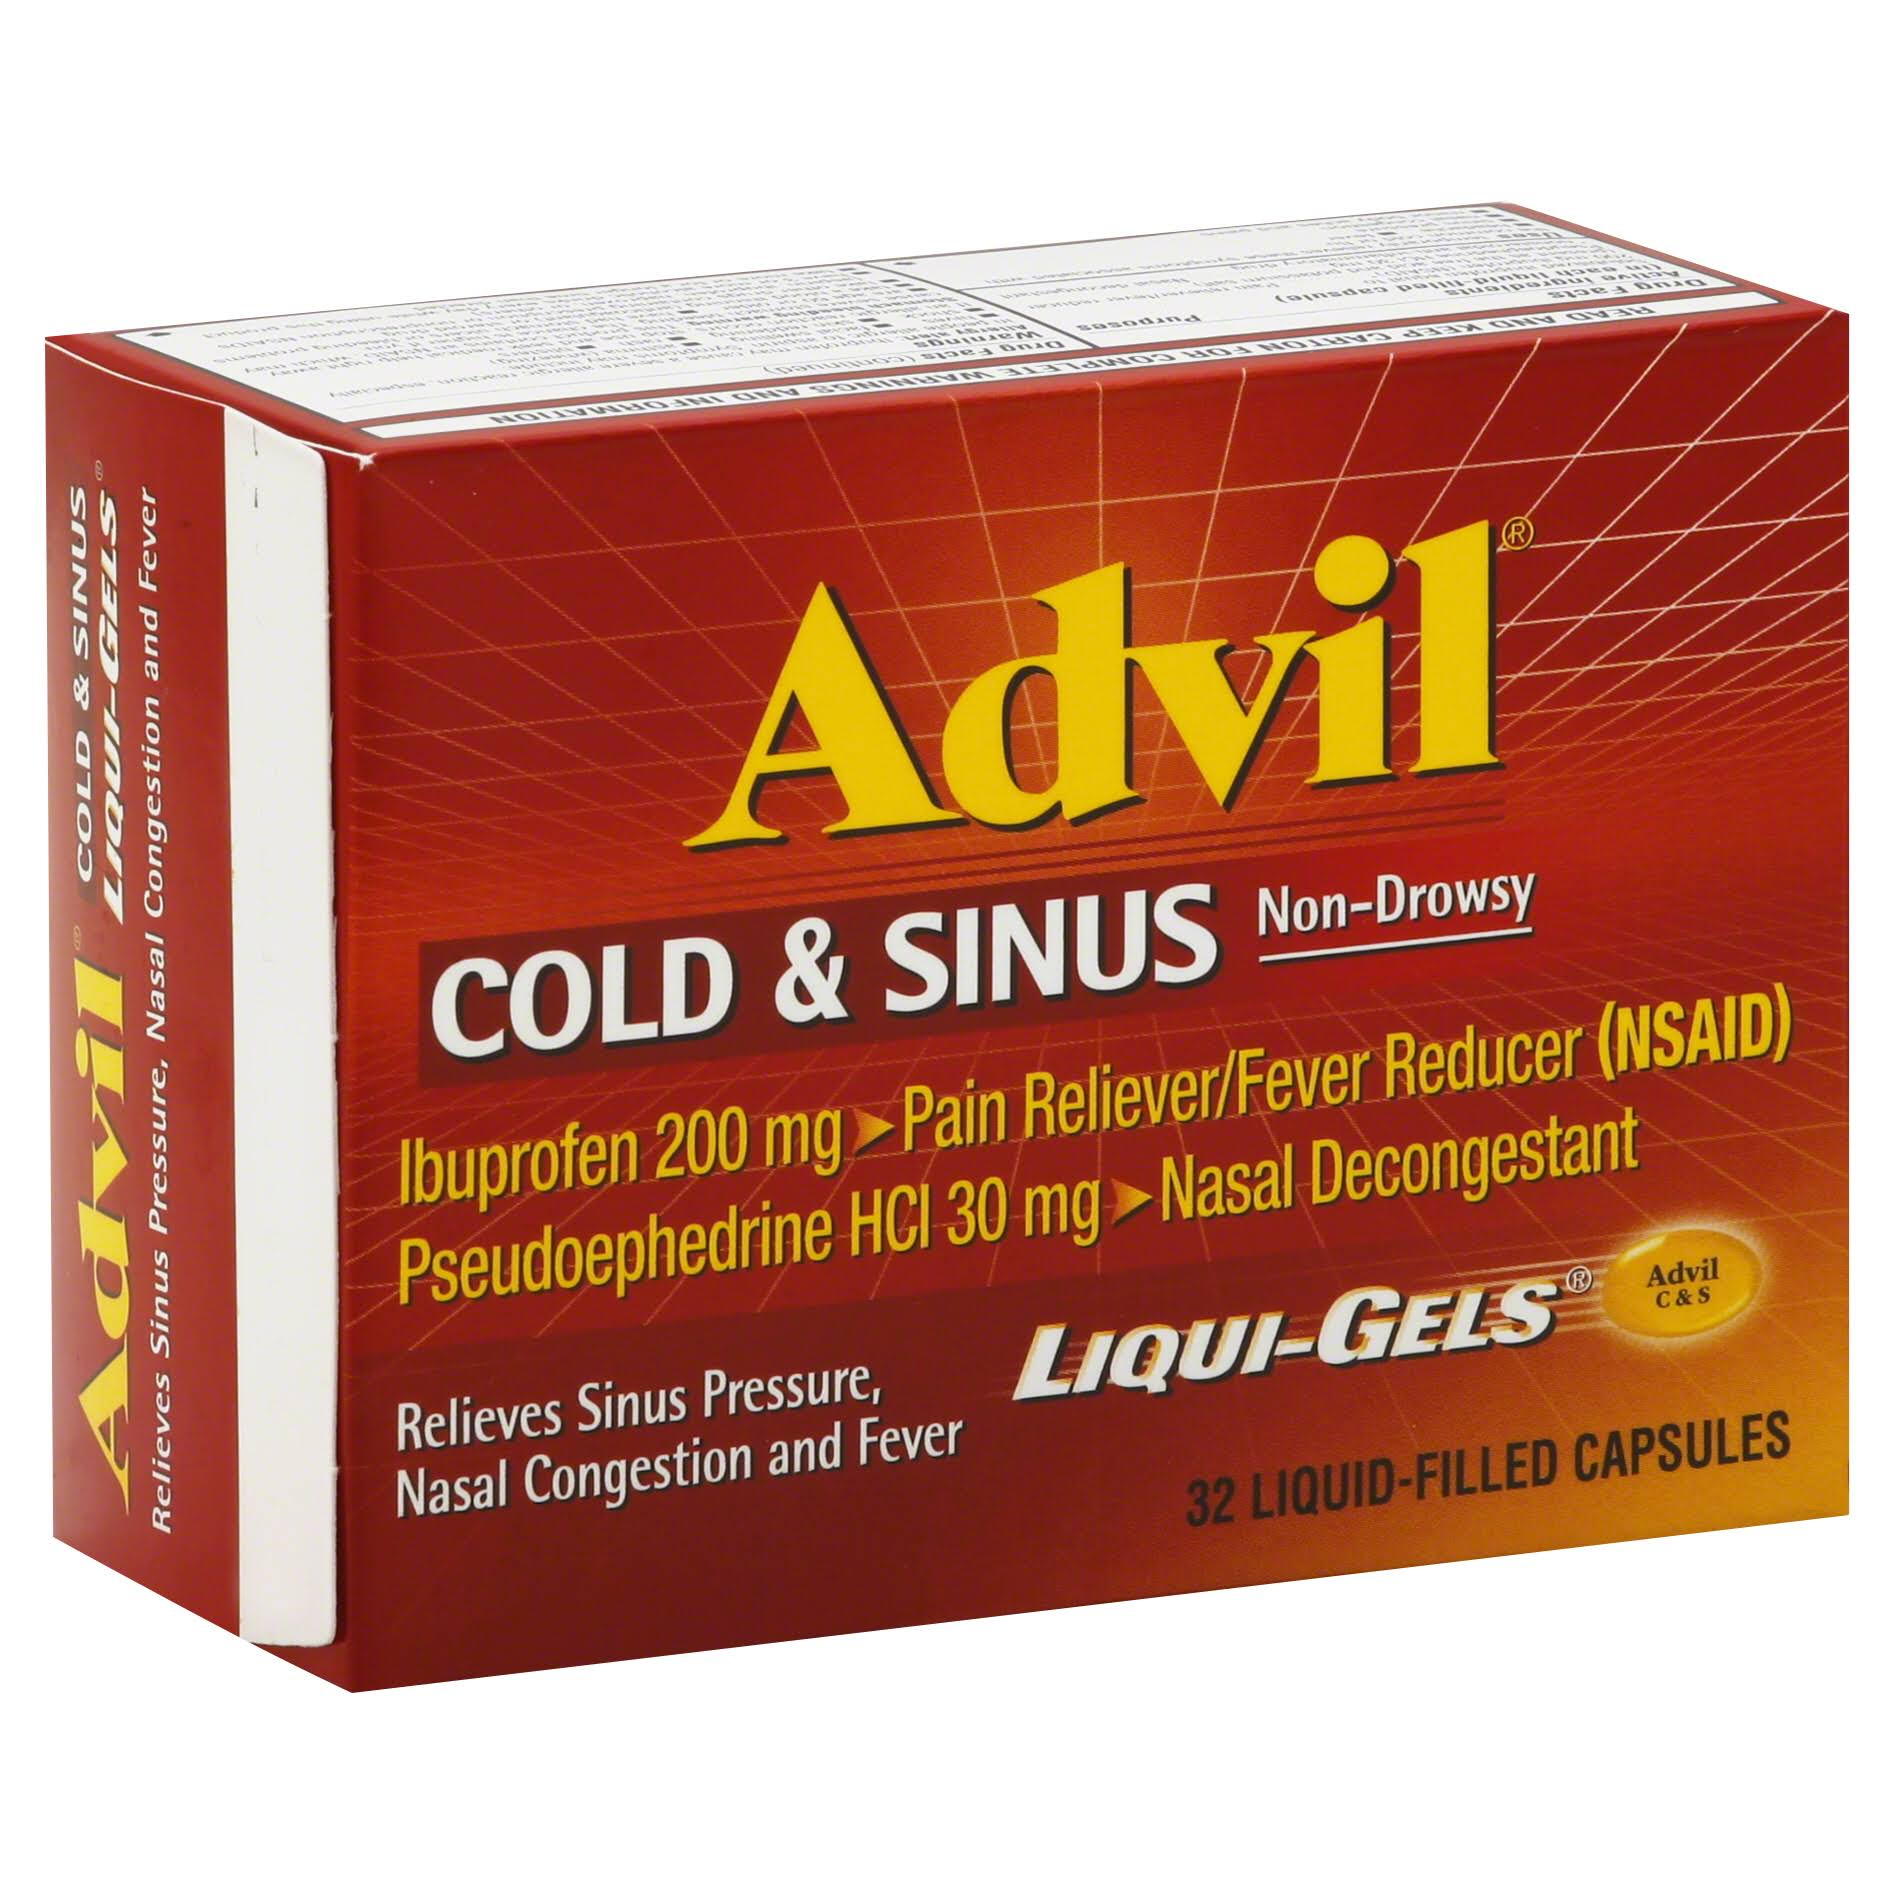 Advil Cold & Sinus Liqui-Gels - 32 Count